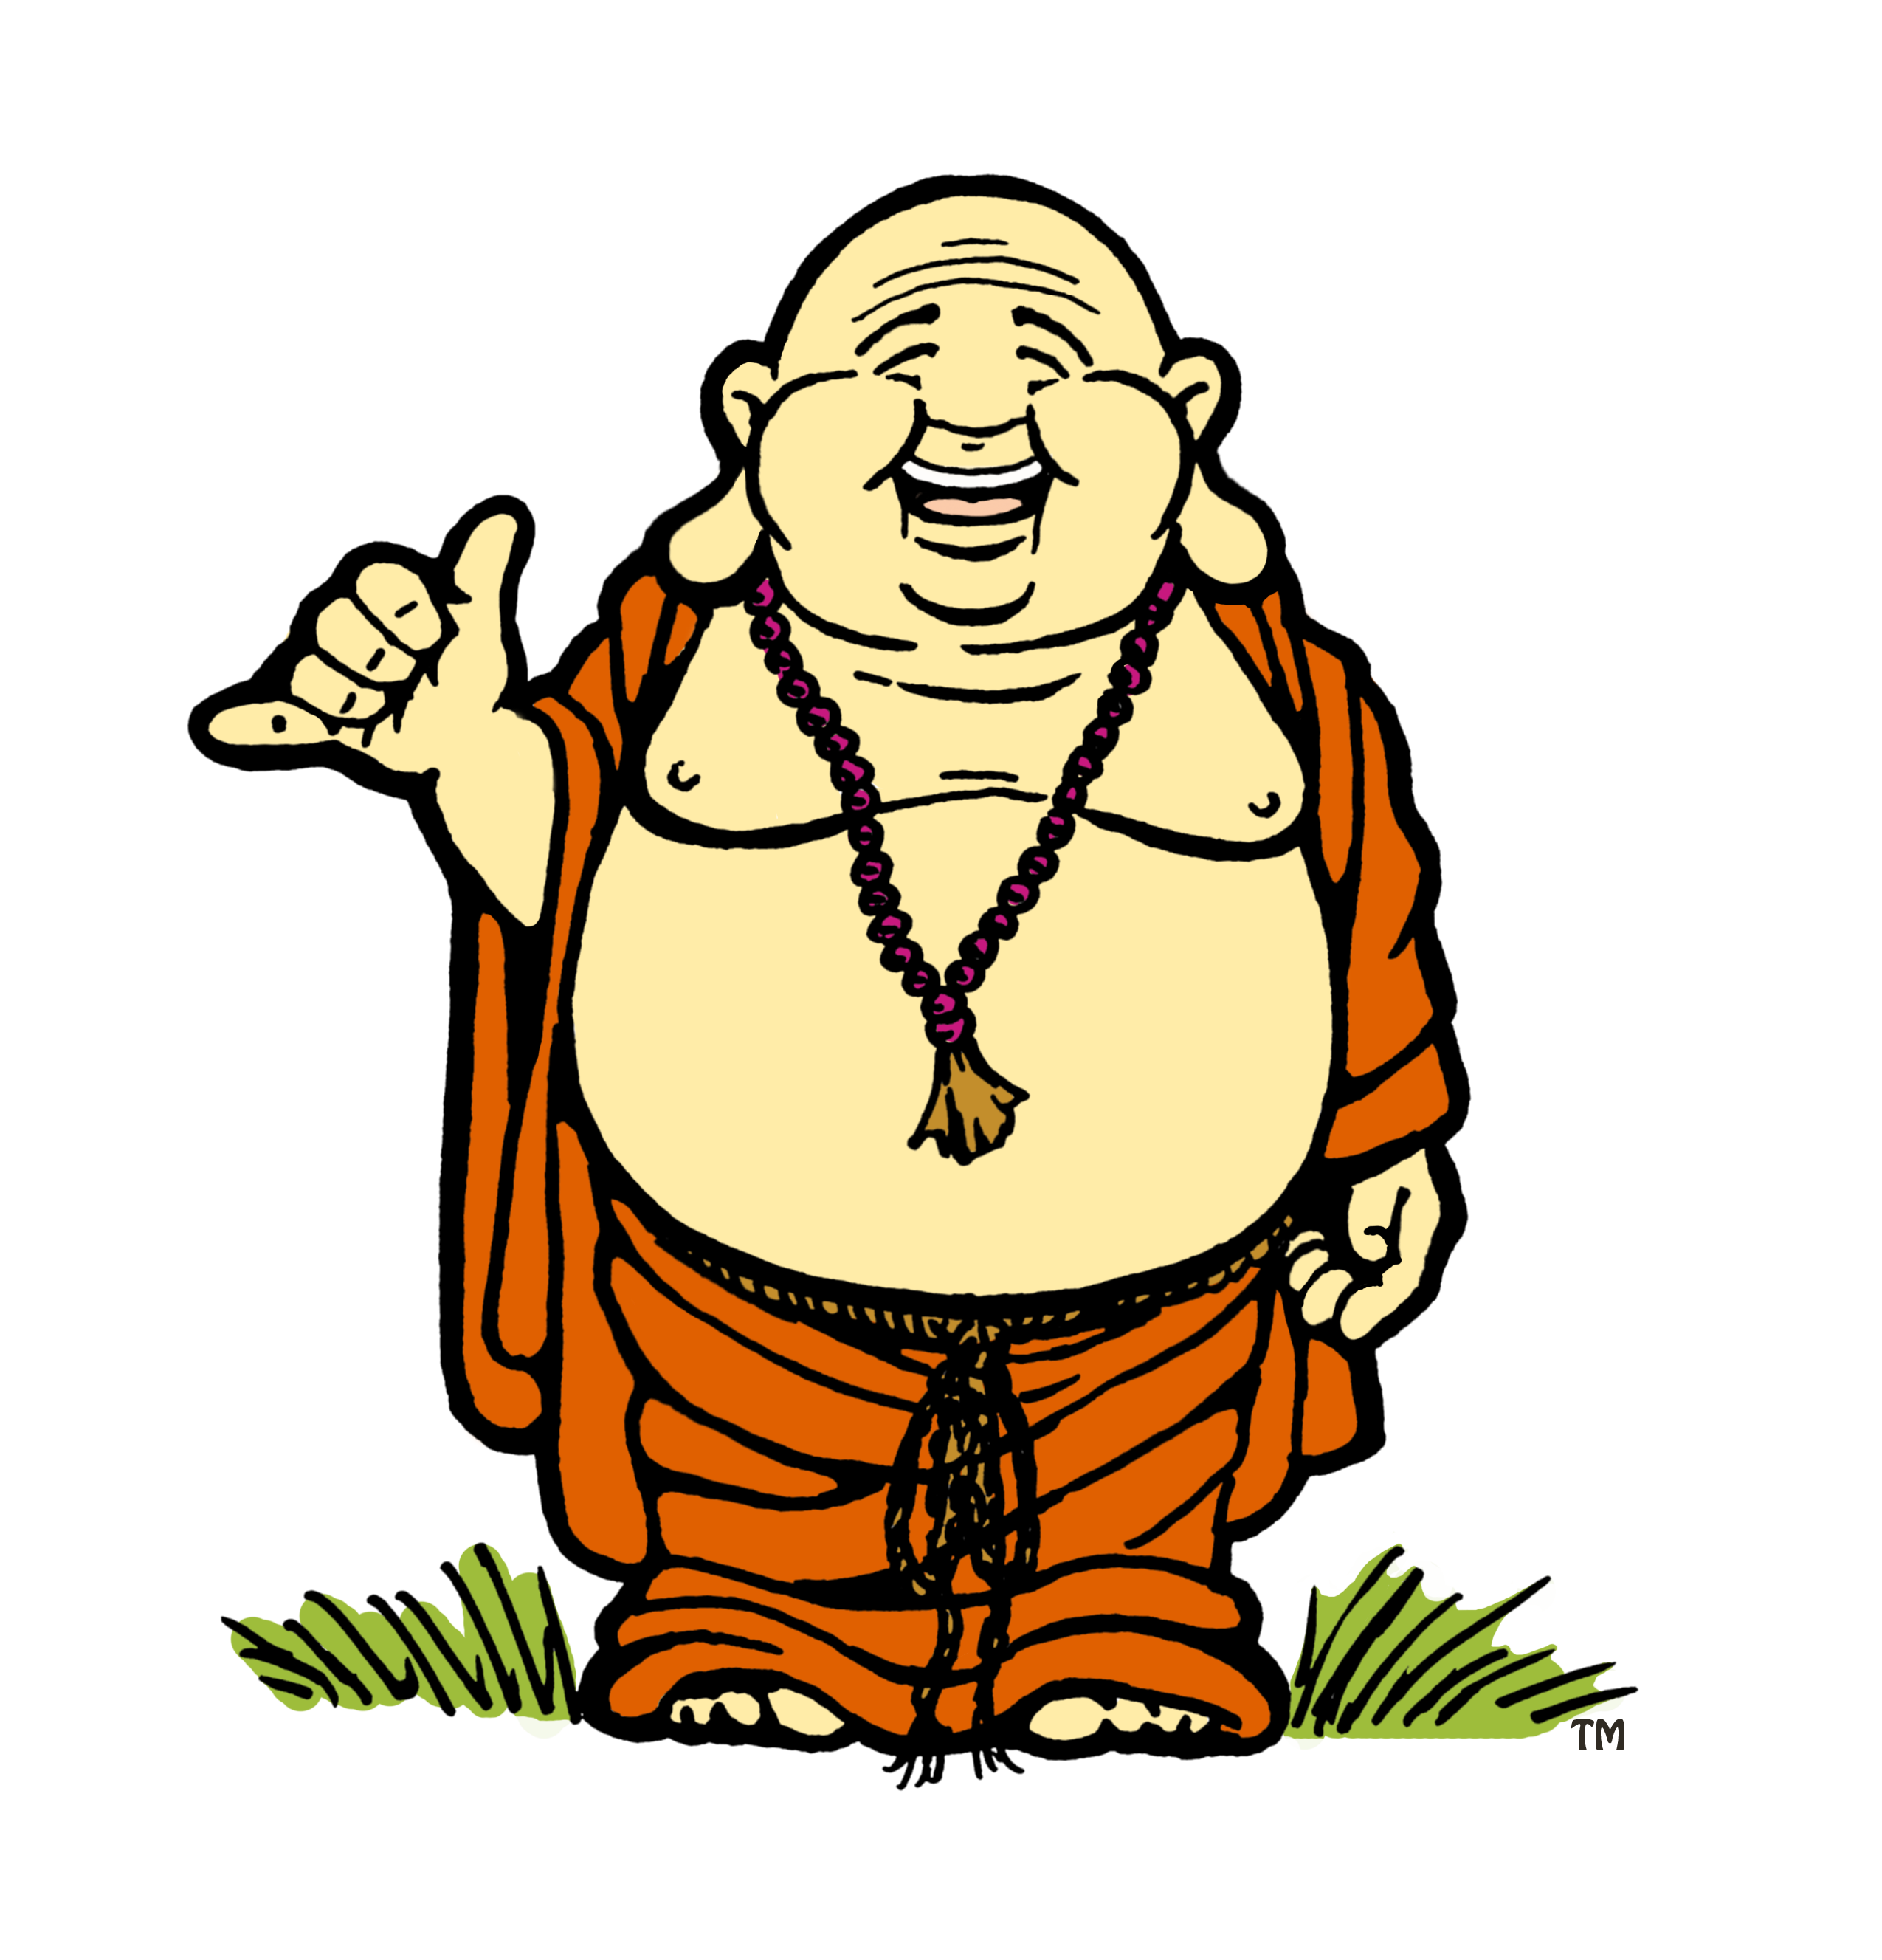 Drawing buddha cartoon. Collection of high